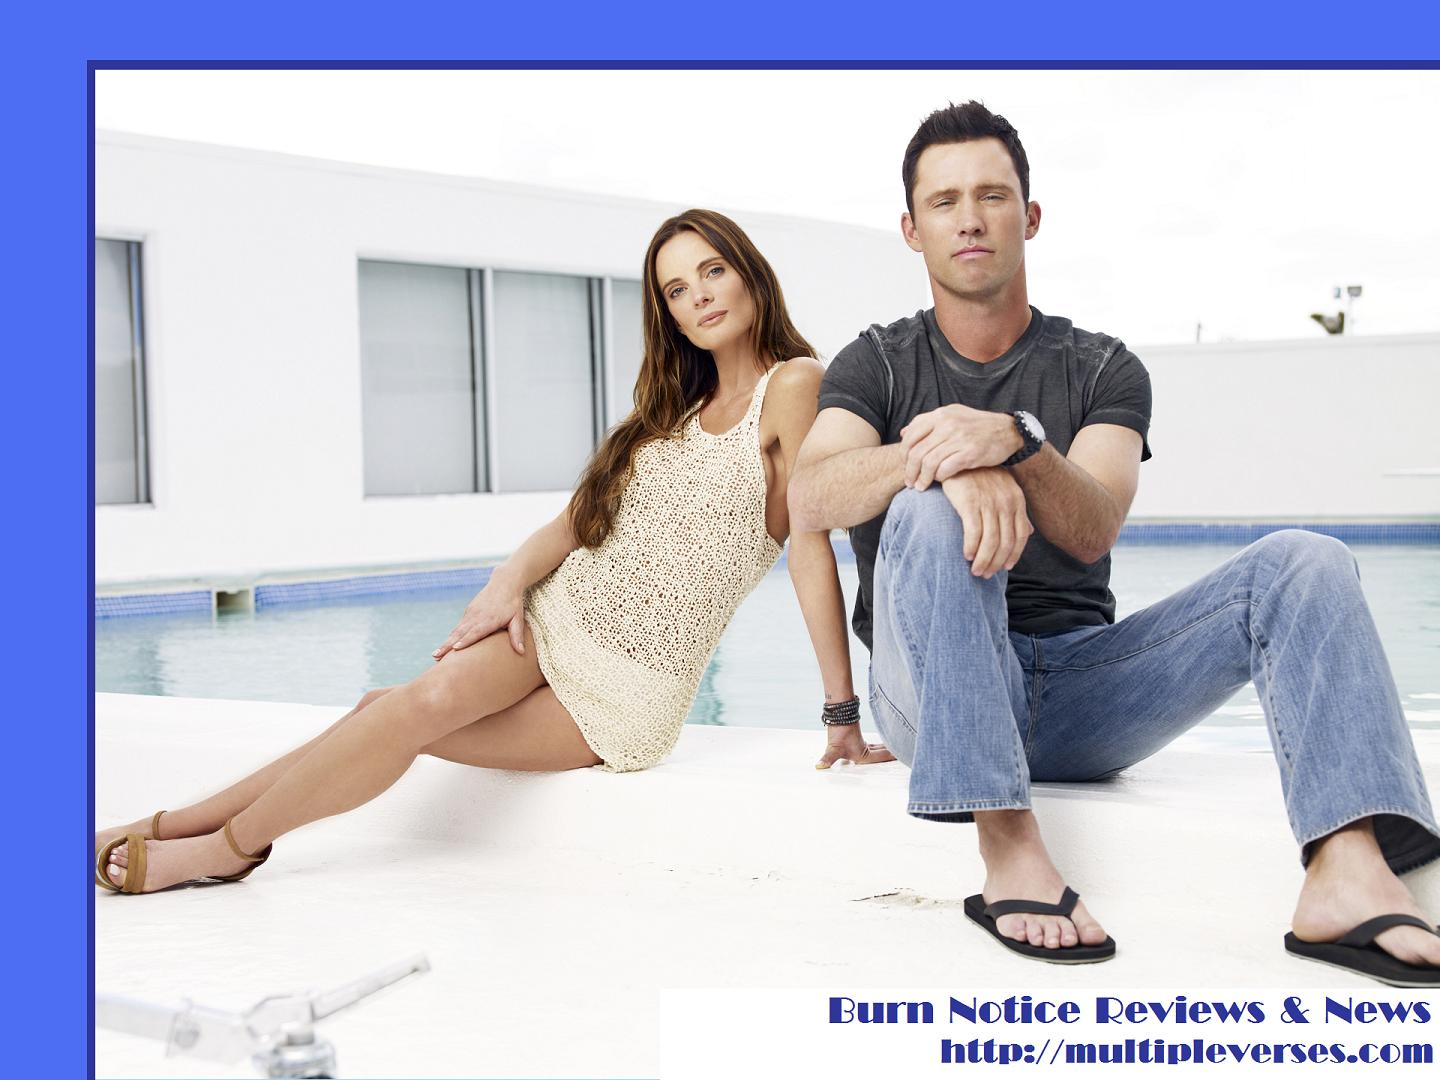 Burn Notice Wallpaper from Multipleverses 1440x1080